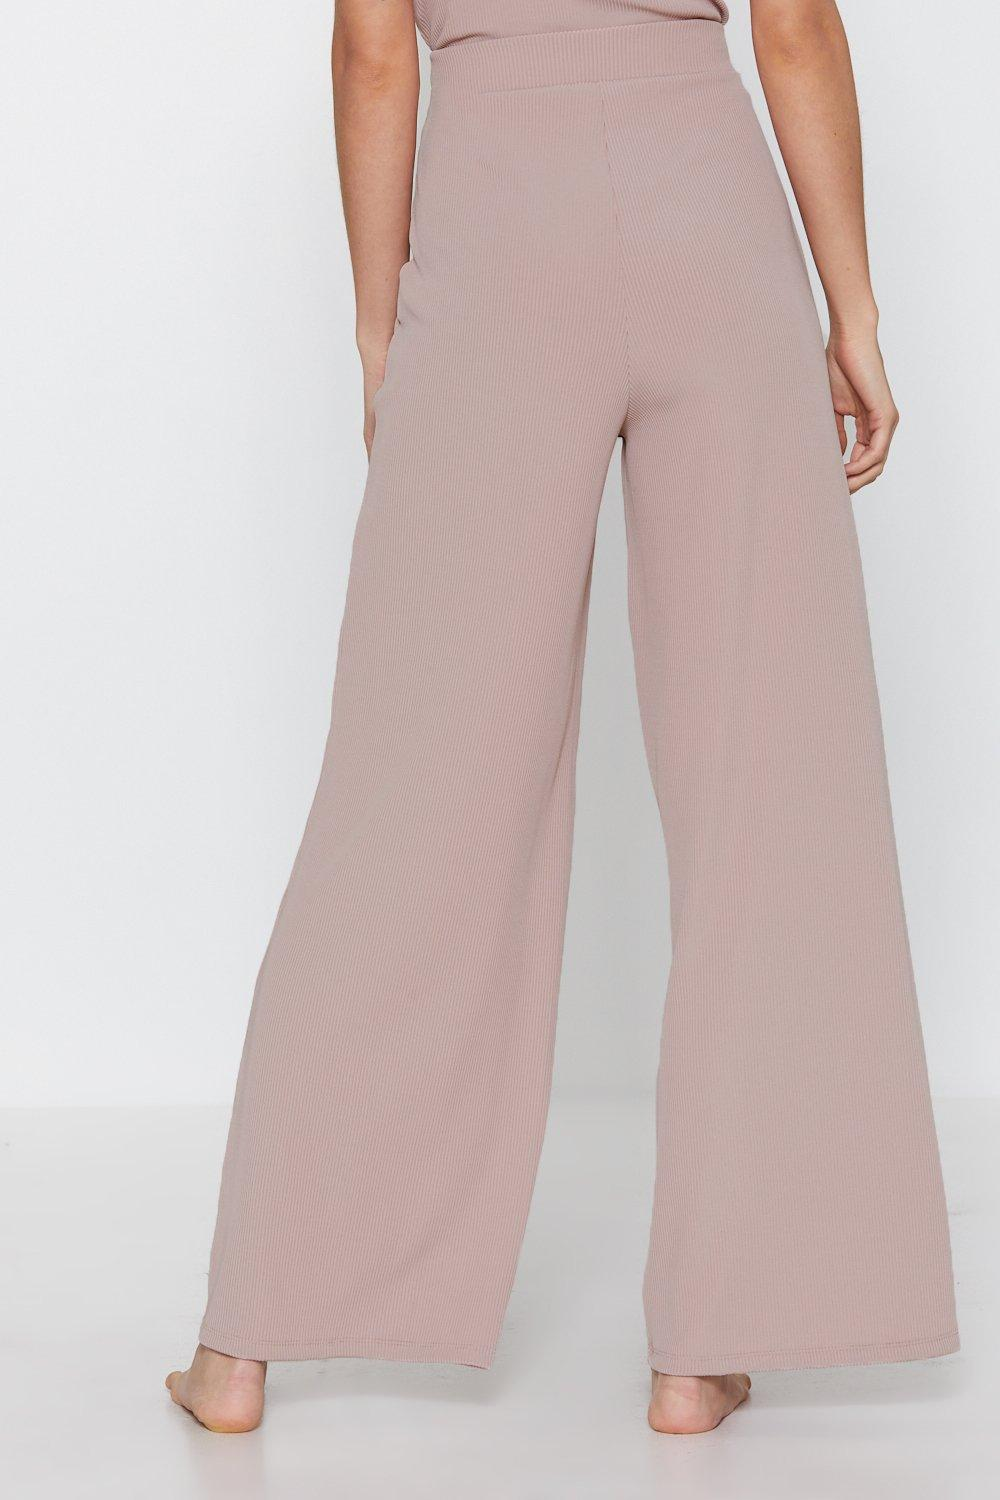 190c9ace343ef Ribbed Wide Leg Lounge Pants. Hover to zoom